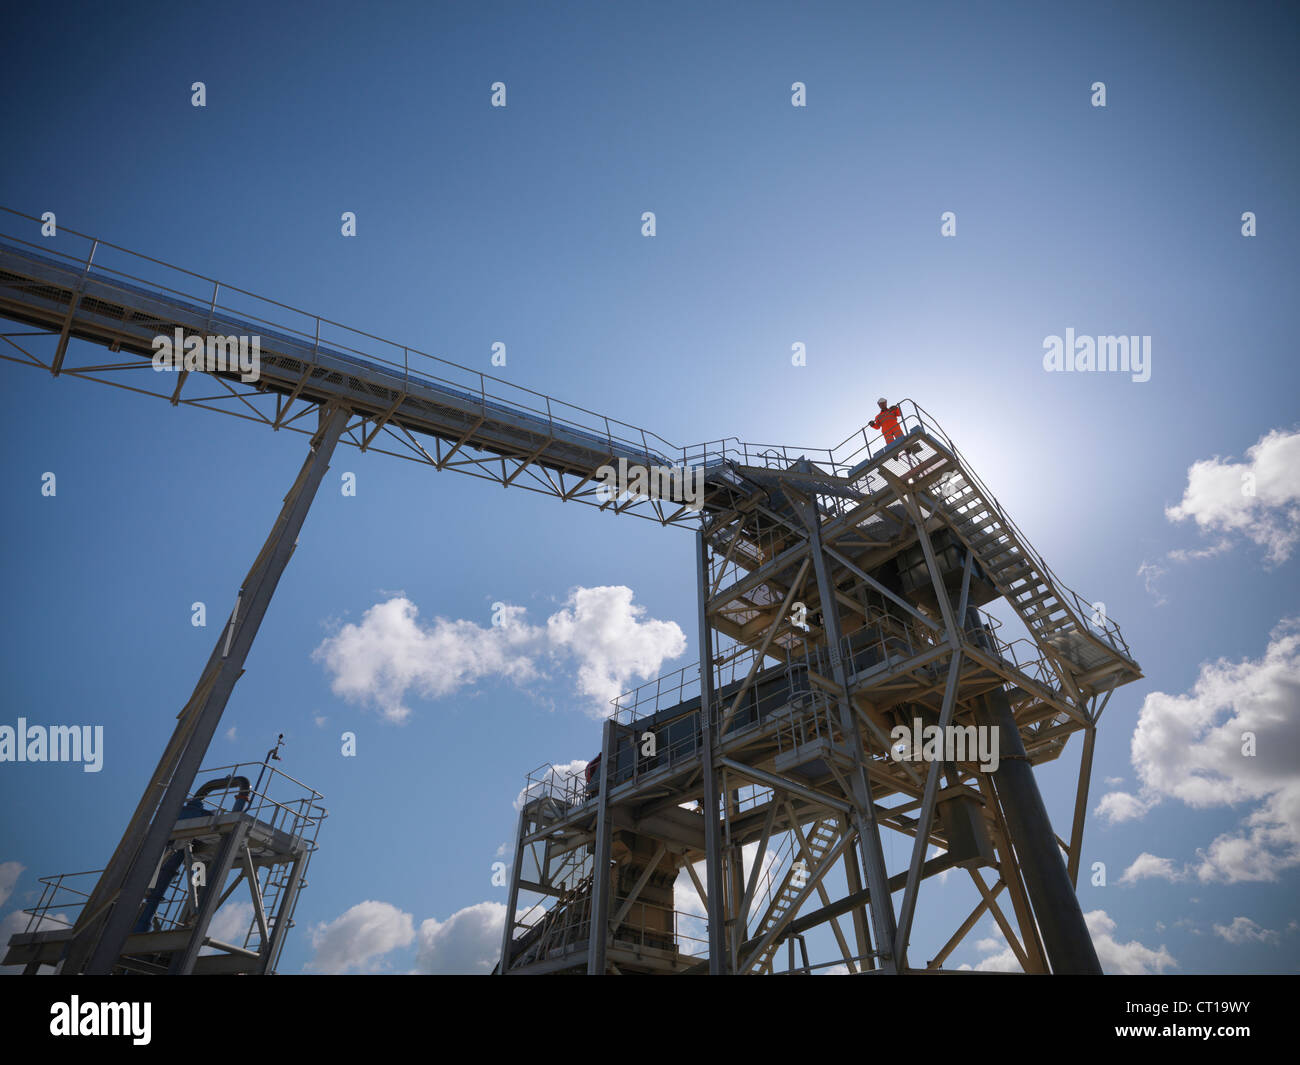 Worker standing on conveyor in quarry - Stock Image